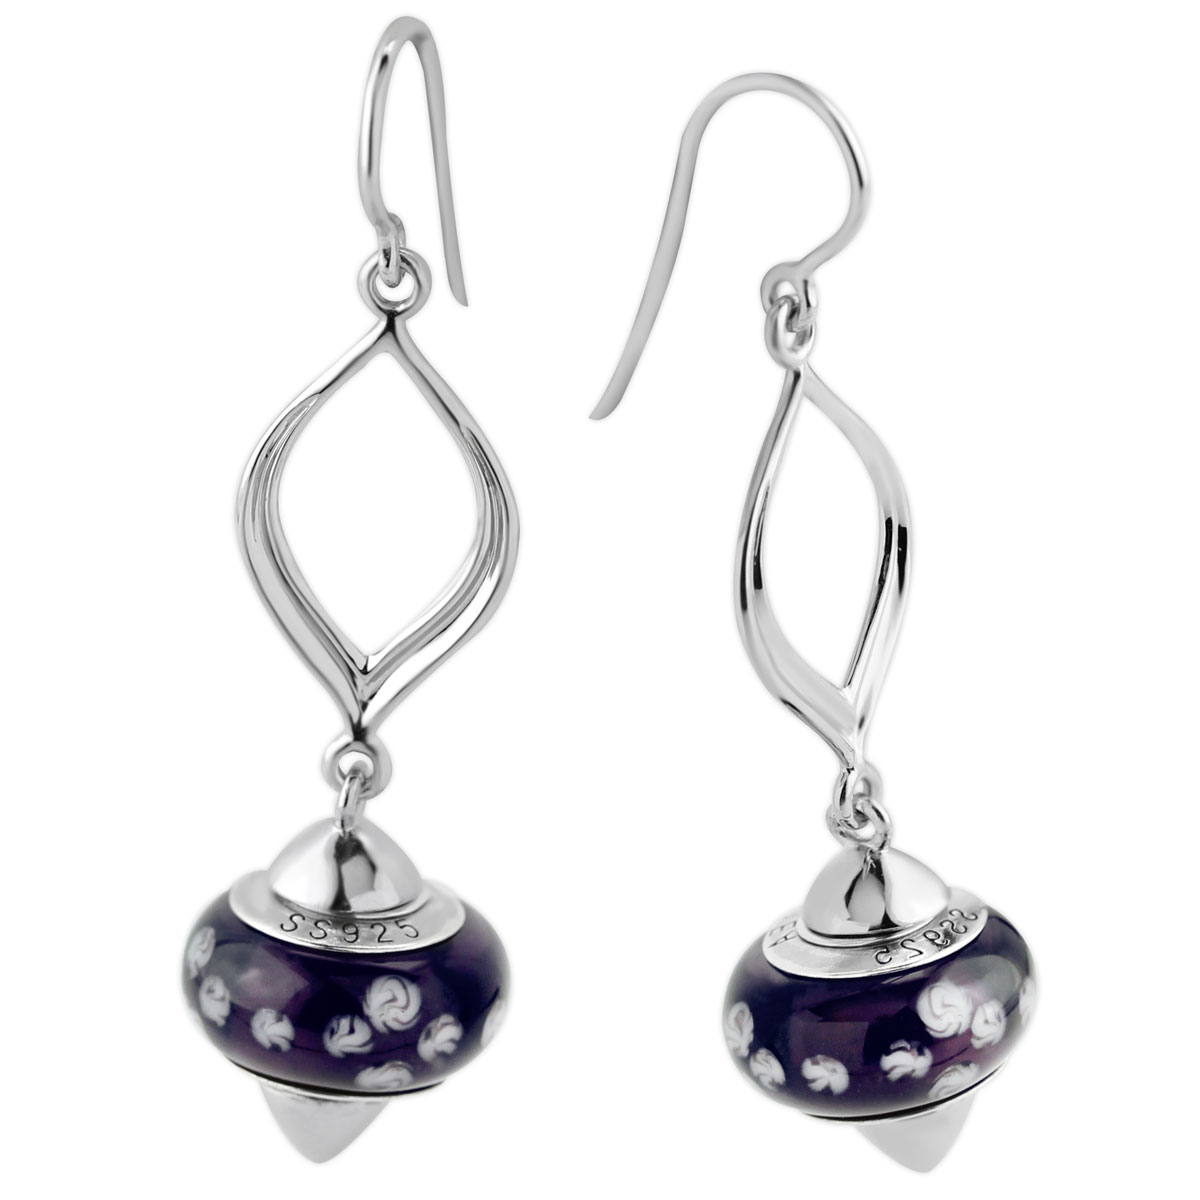 342110-Galatea Interchangeable Oval Earrings with Purple & White Beads